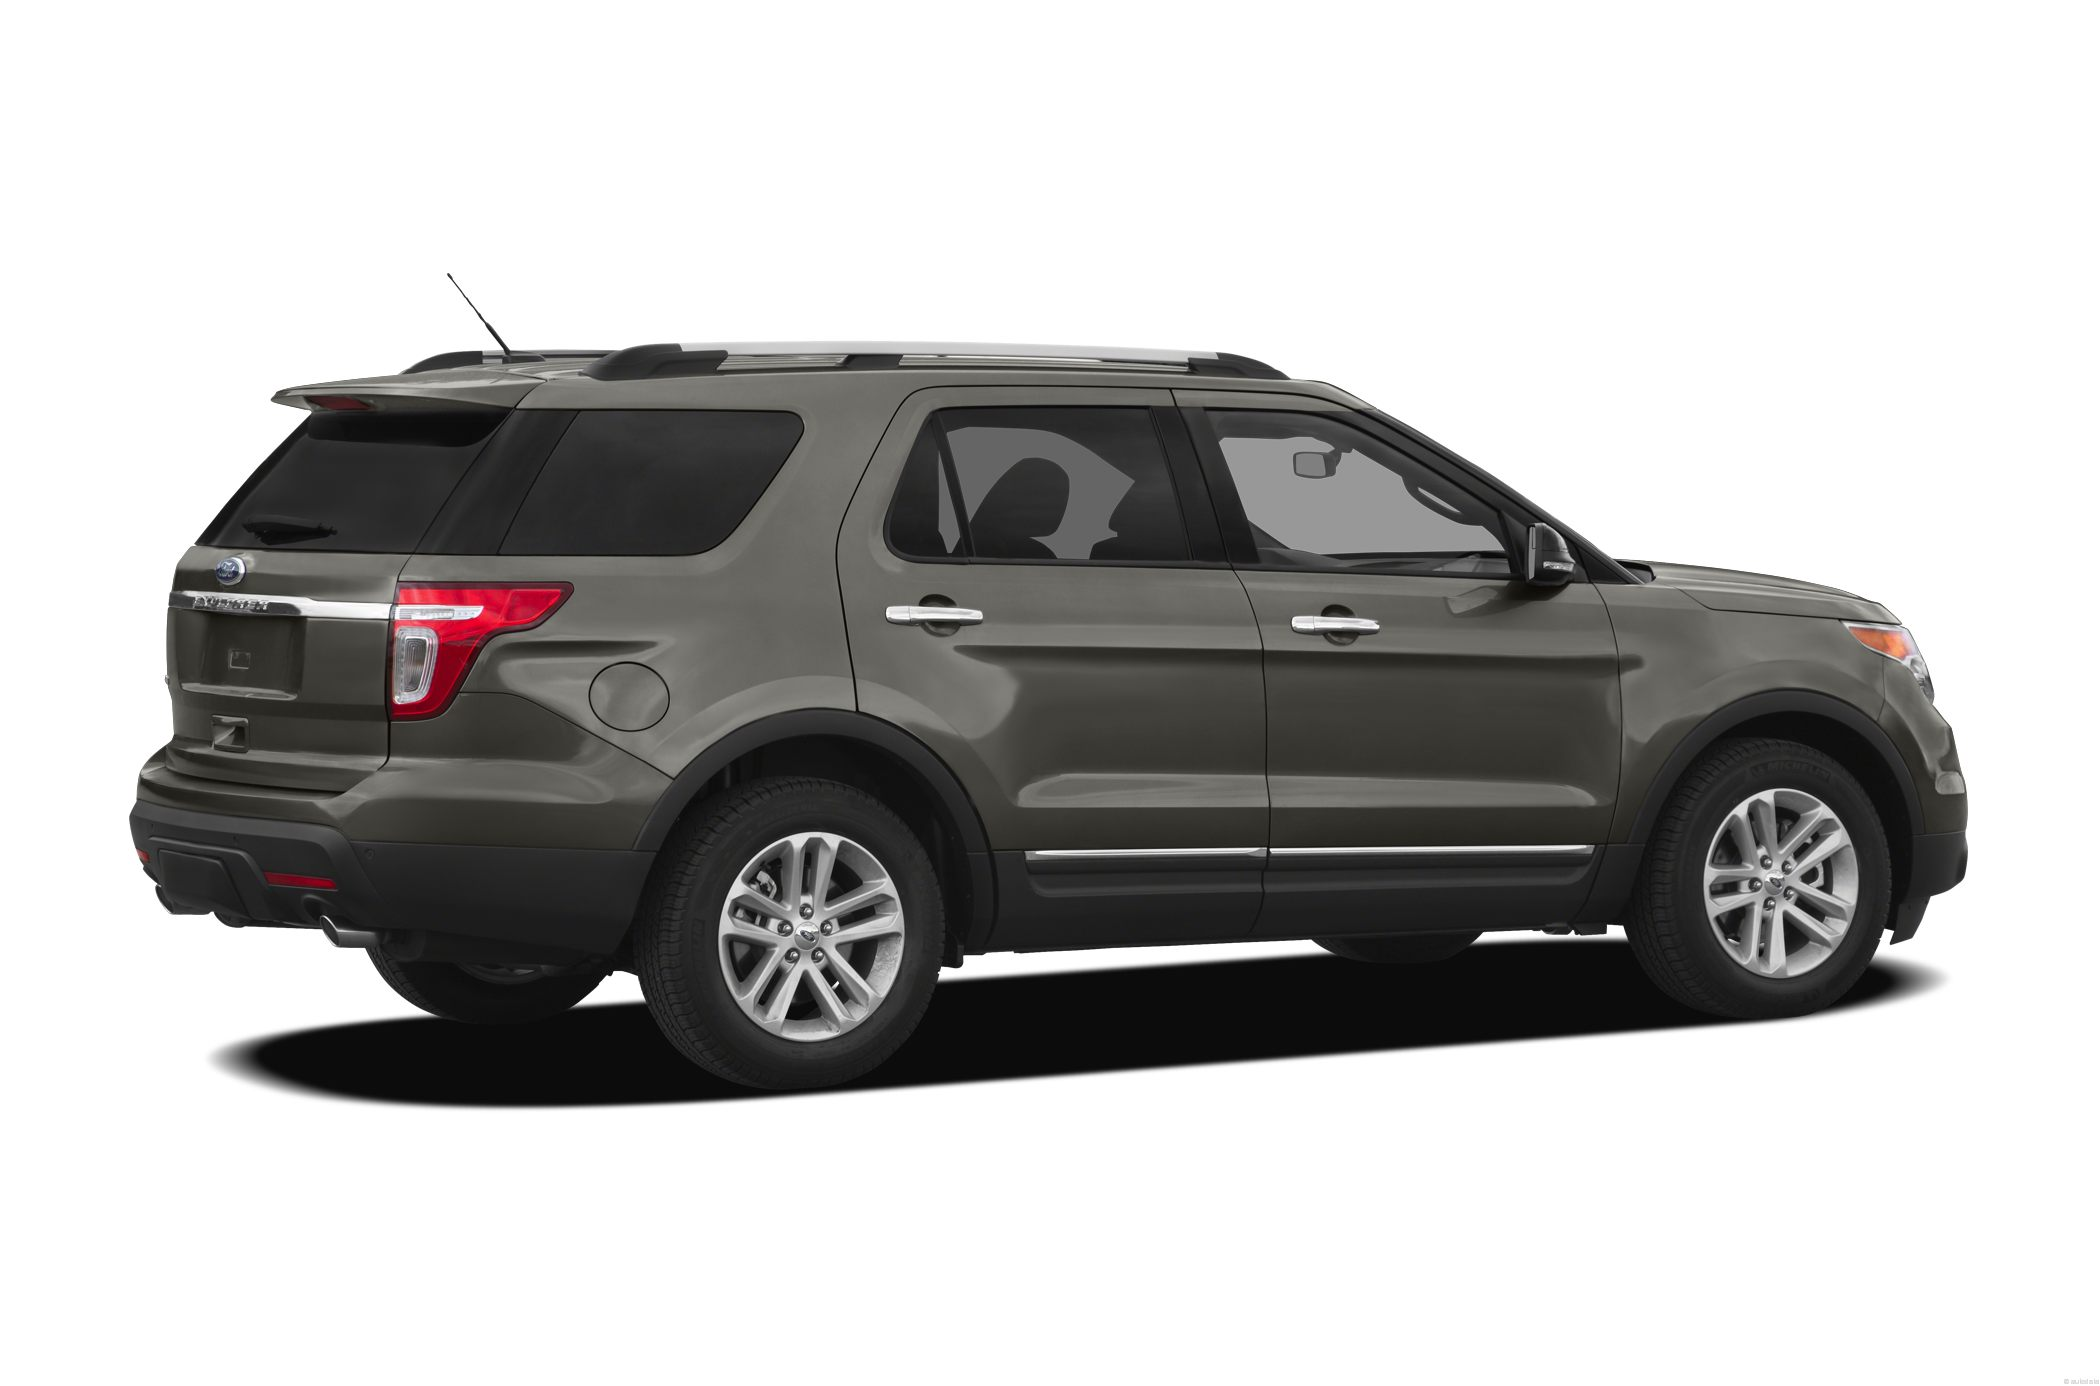 Ford Explorer 3.5 2012 photo - 12